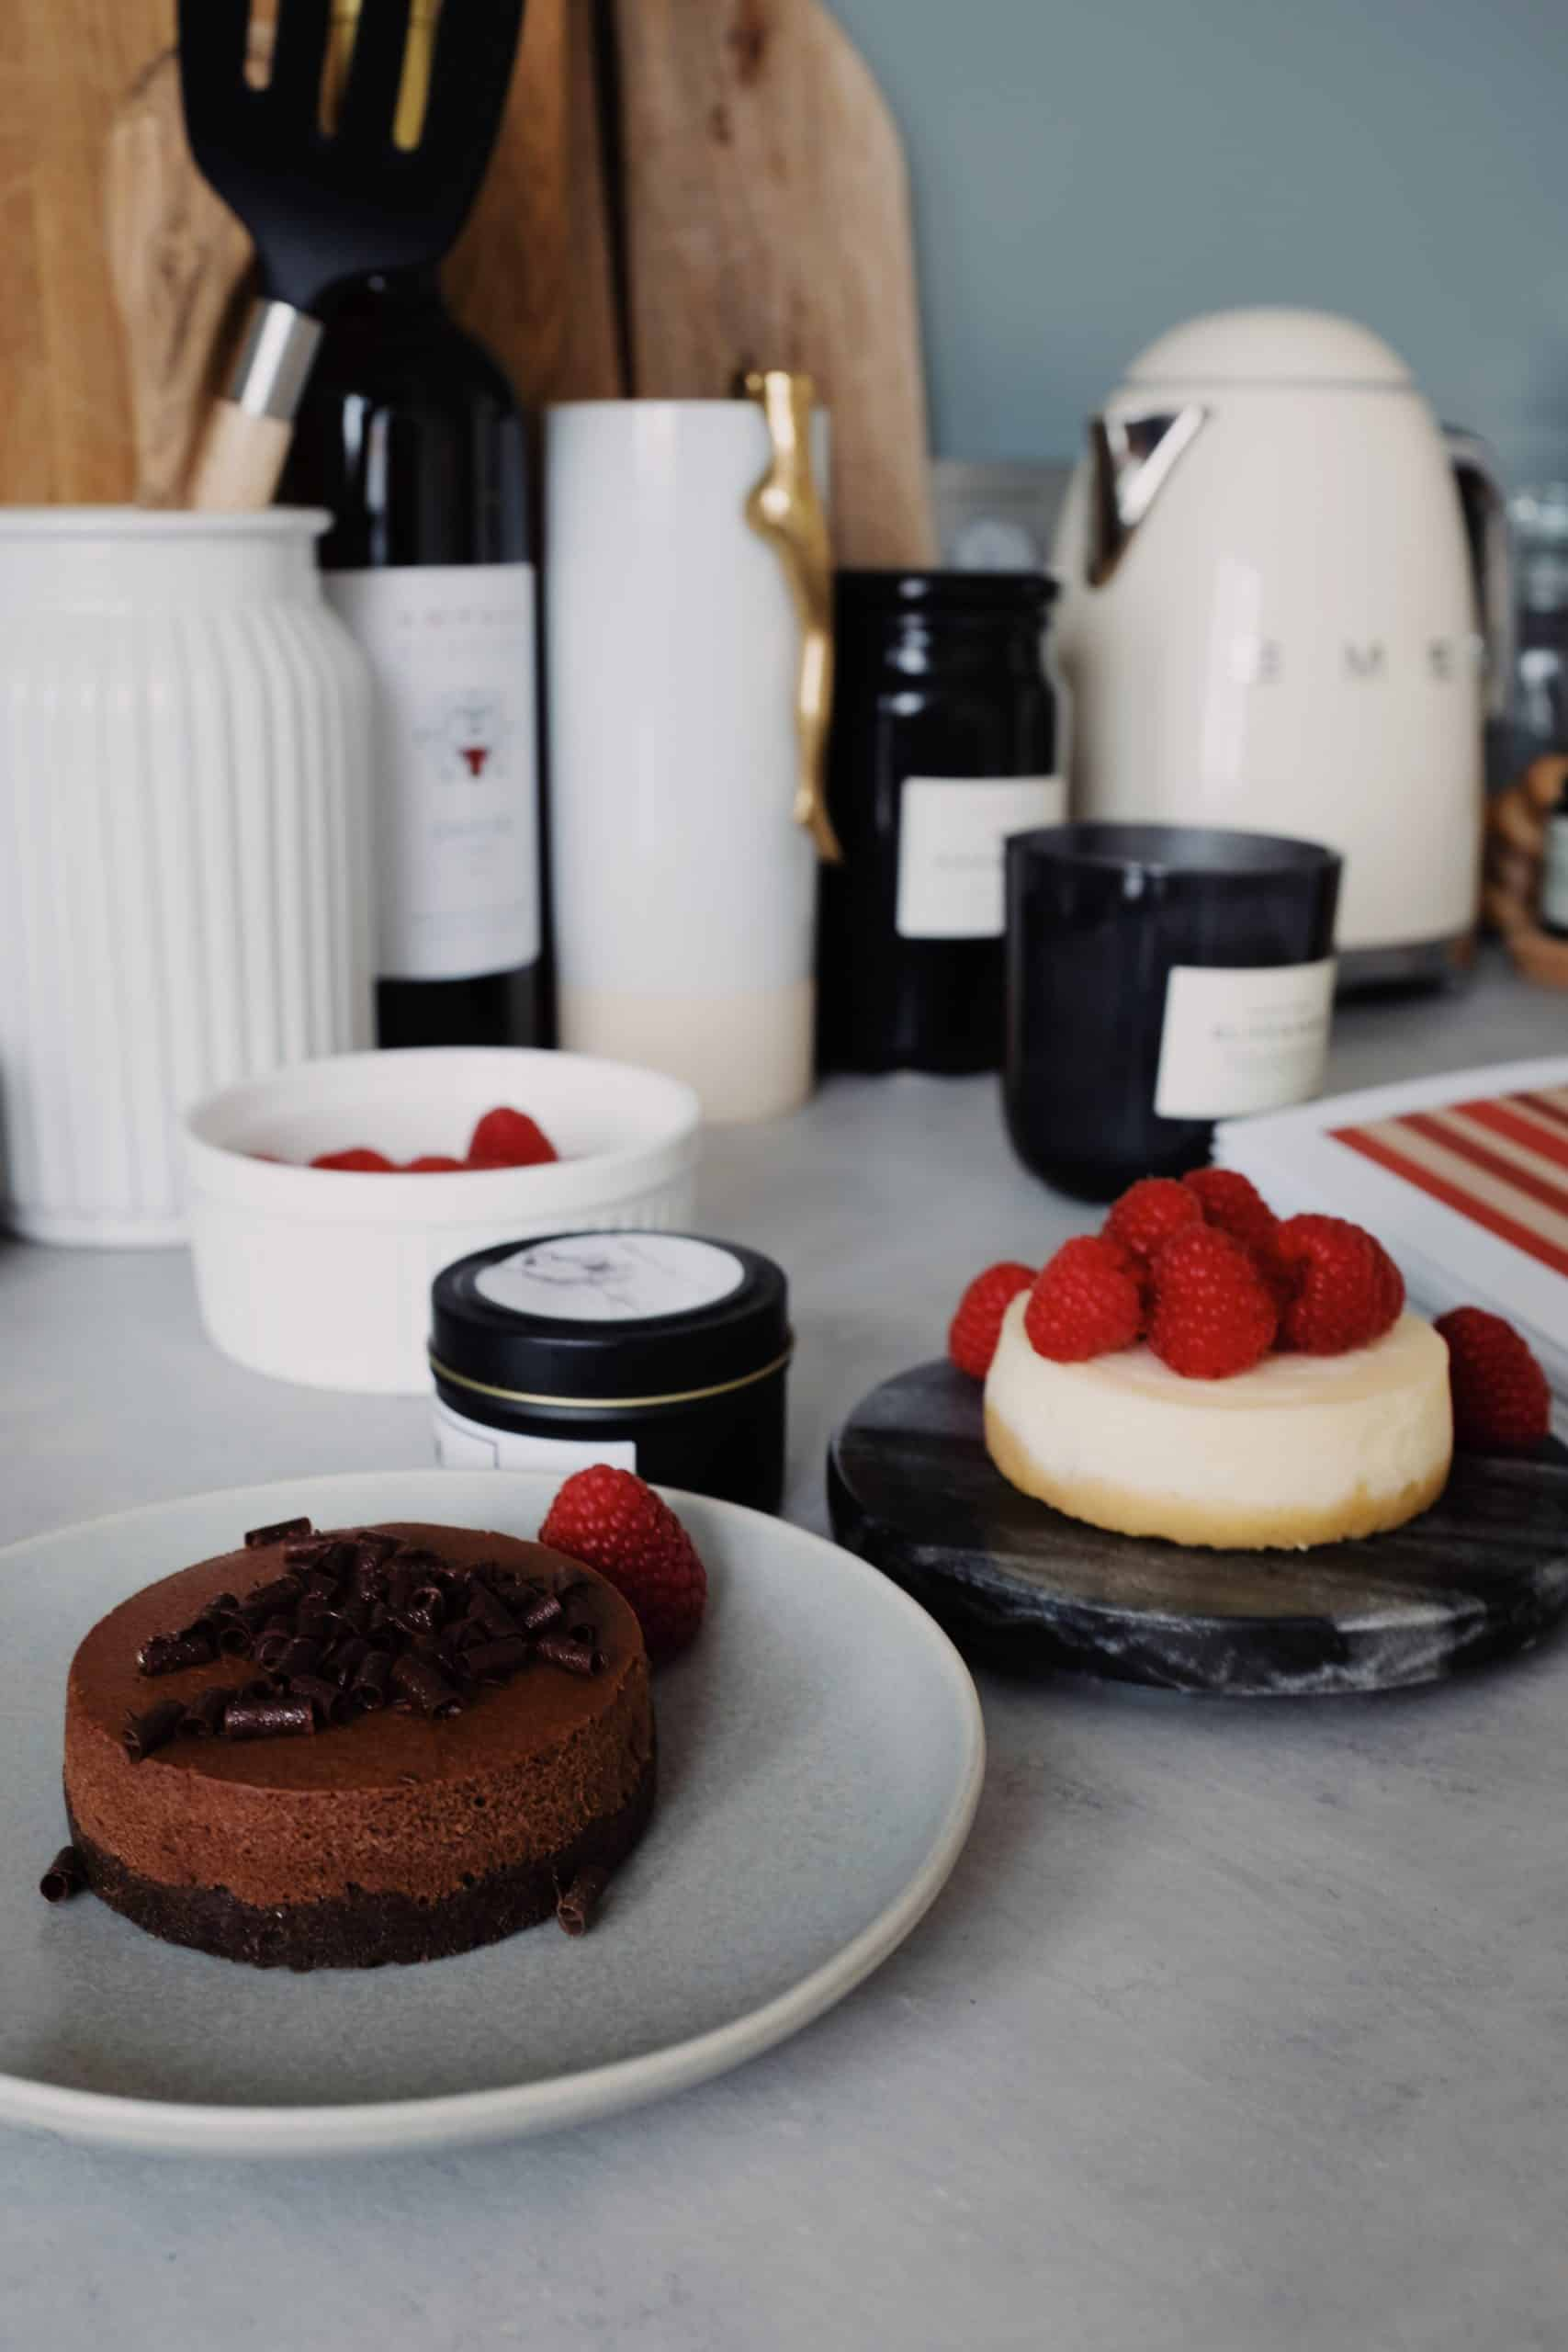 The Baking Essentials - How To Make Your Own Baking Essentials